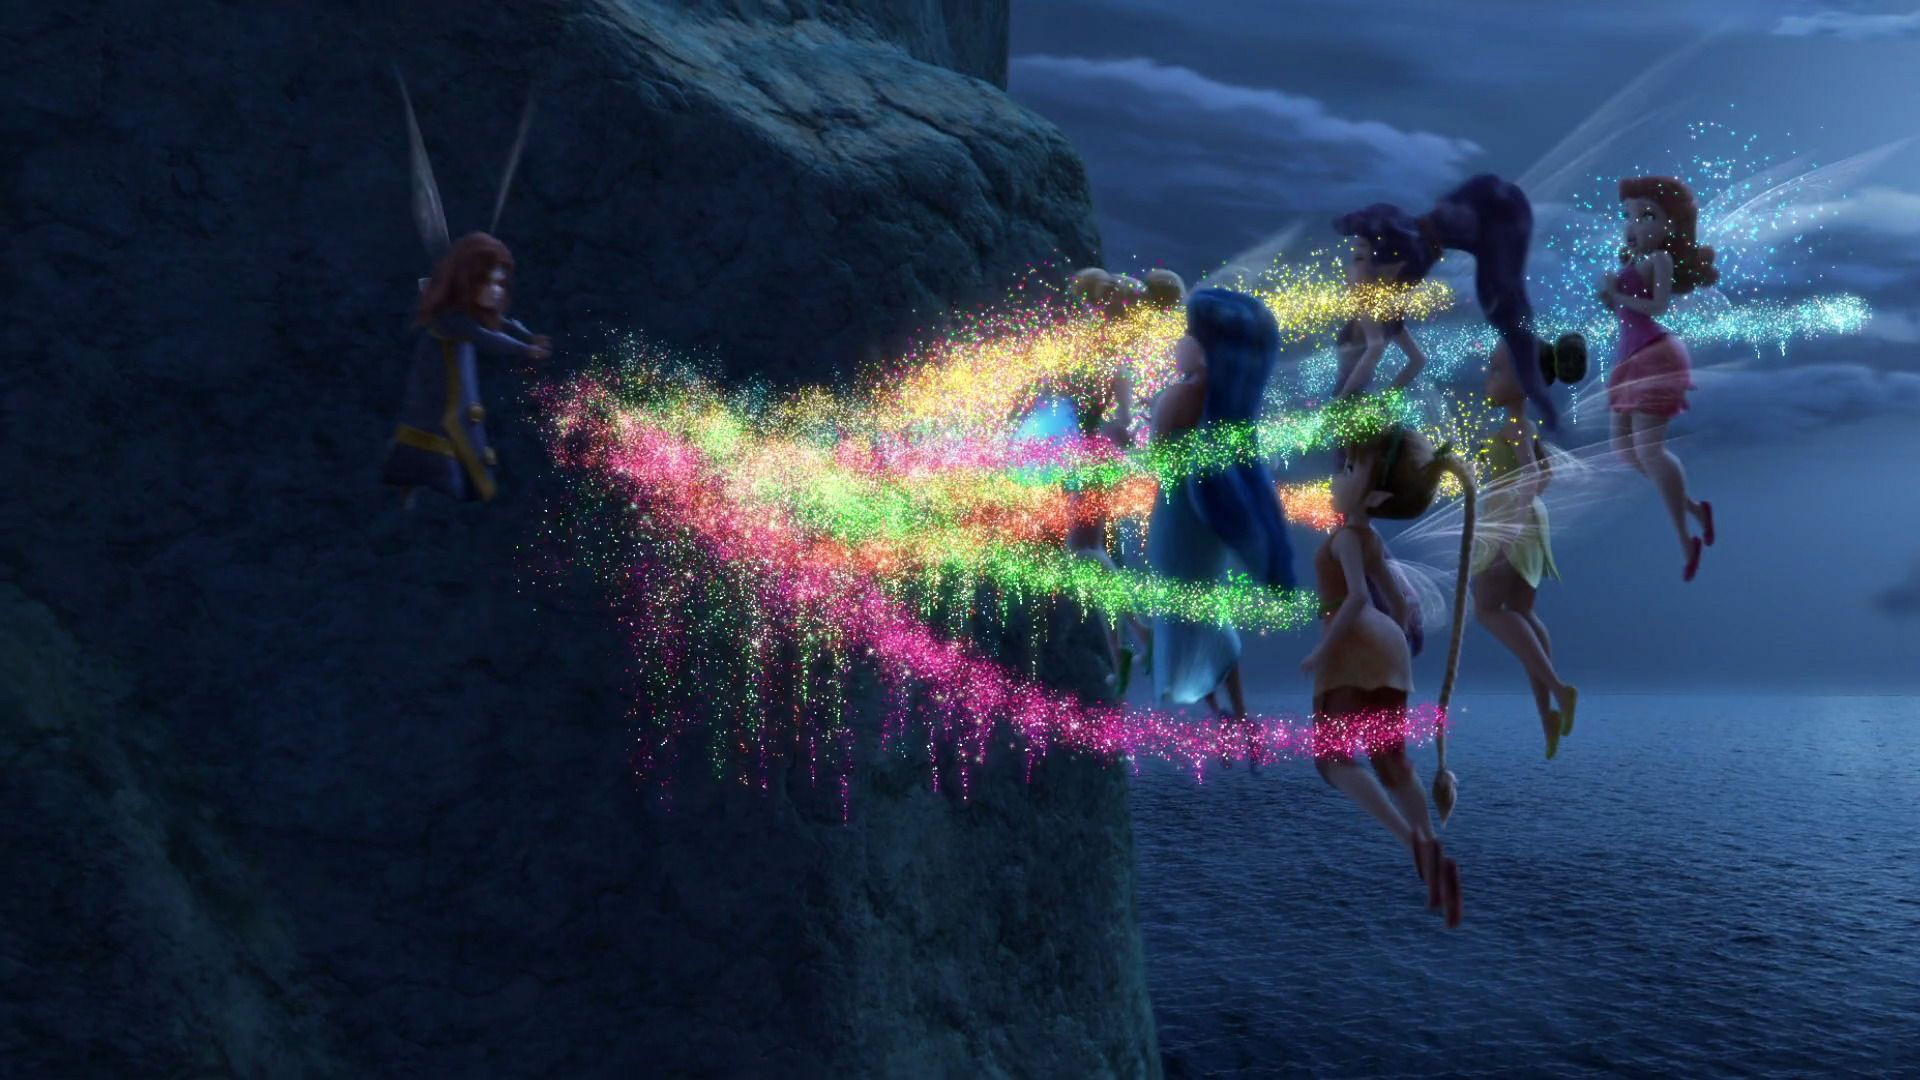 Zarina mixing up the Pixie dust to switch the fairy talent